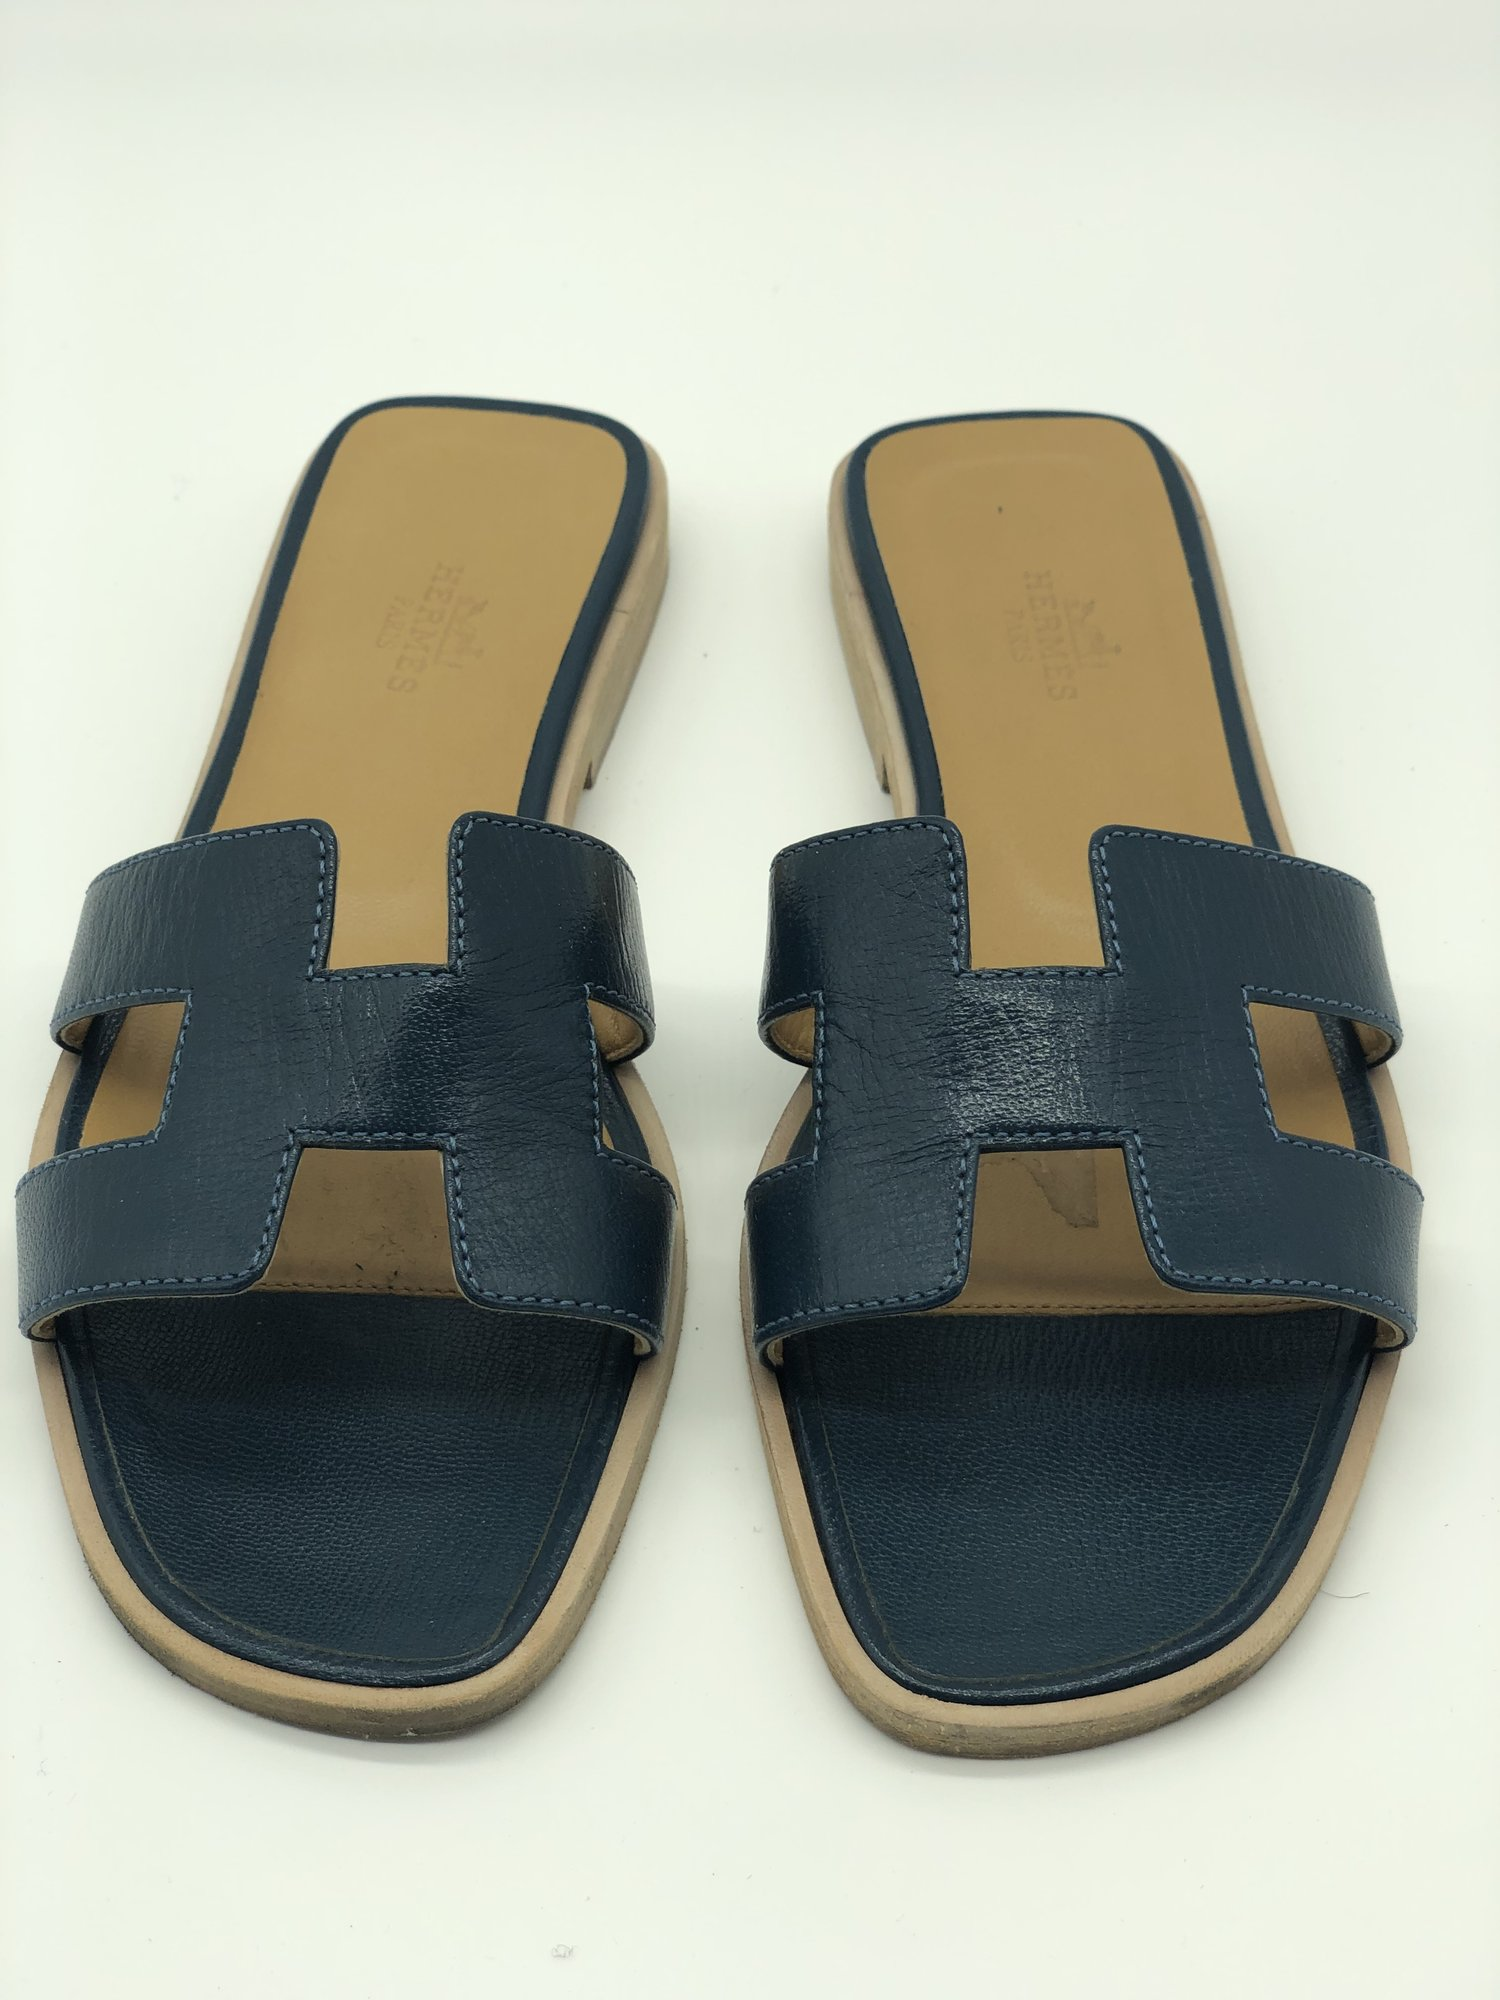 Hermes Oran Sandal, Navy, Size: 36<br /> <br /> Condition: EXCELLENT. Like new